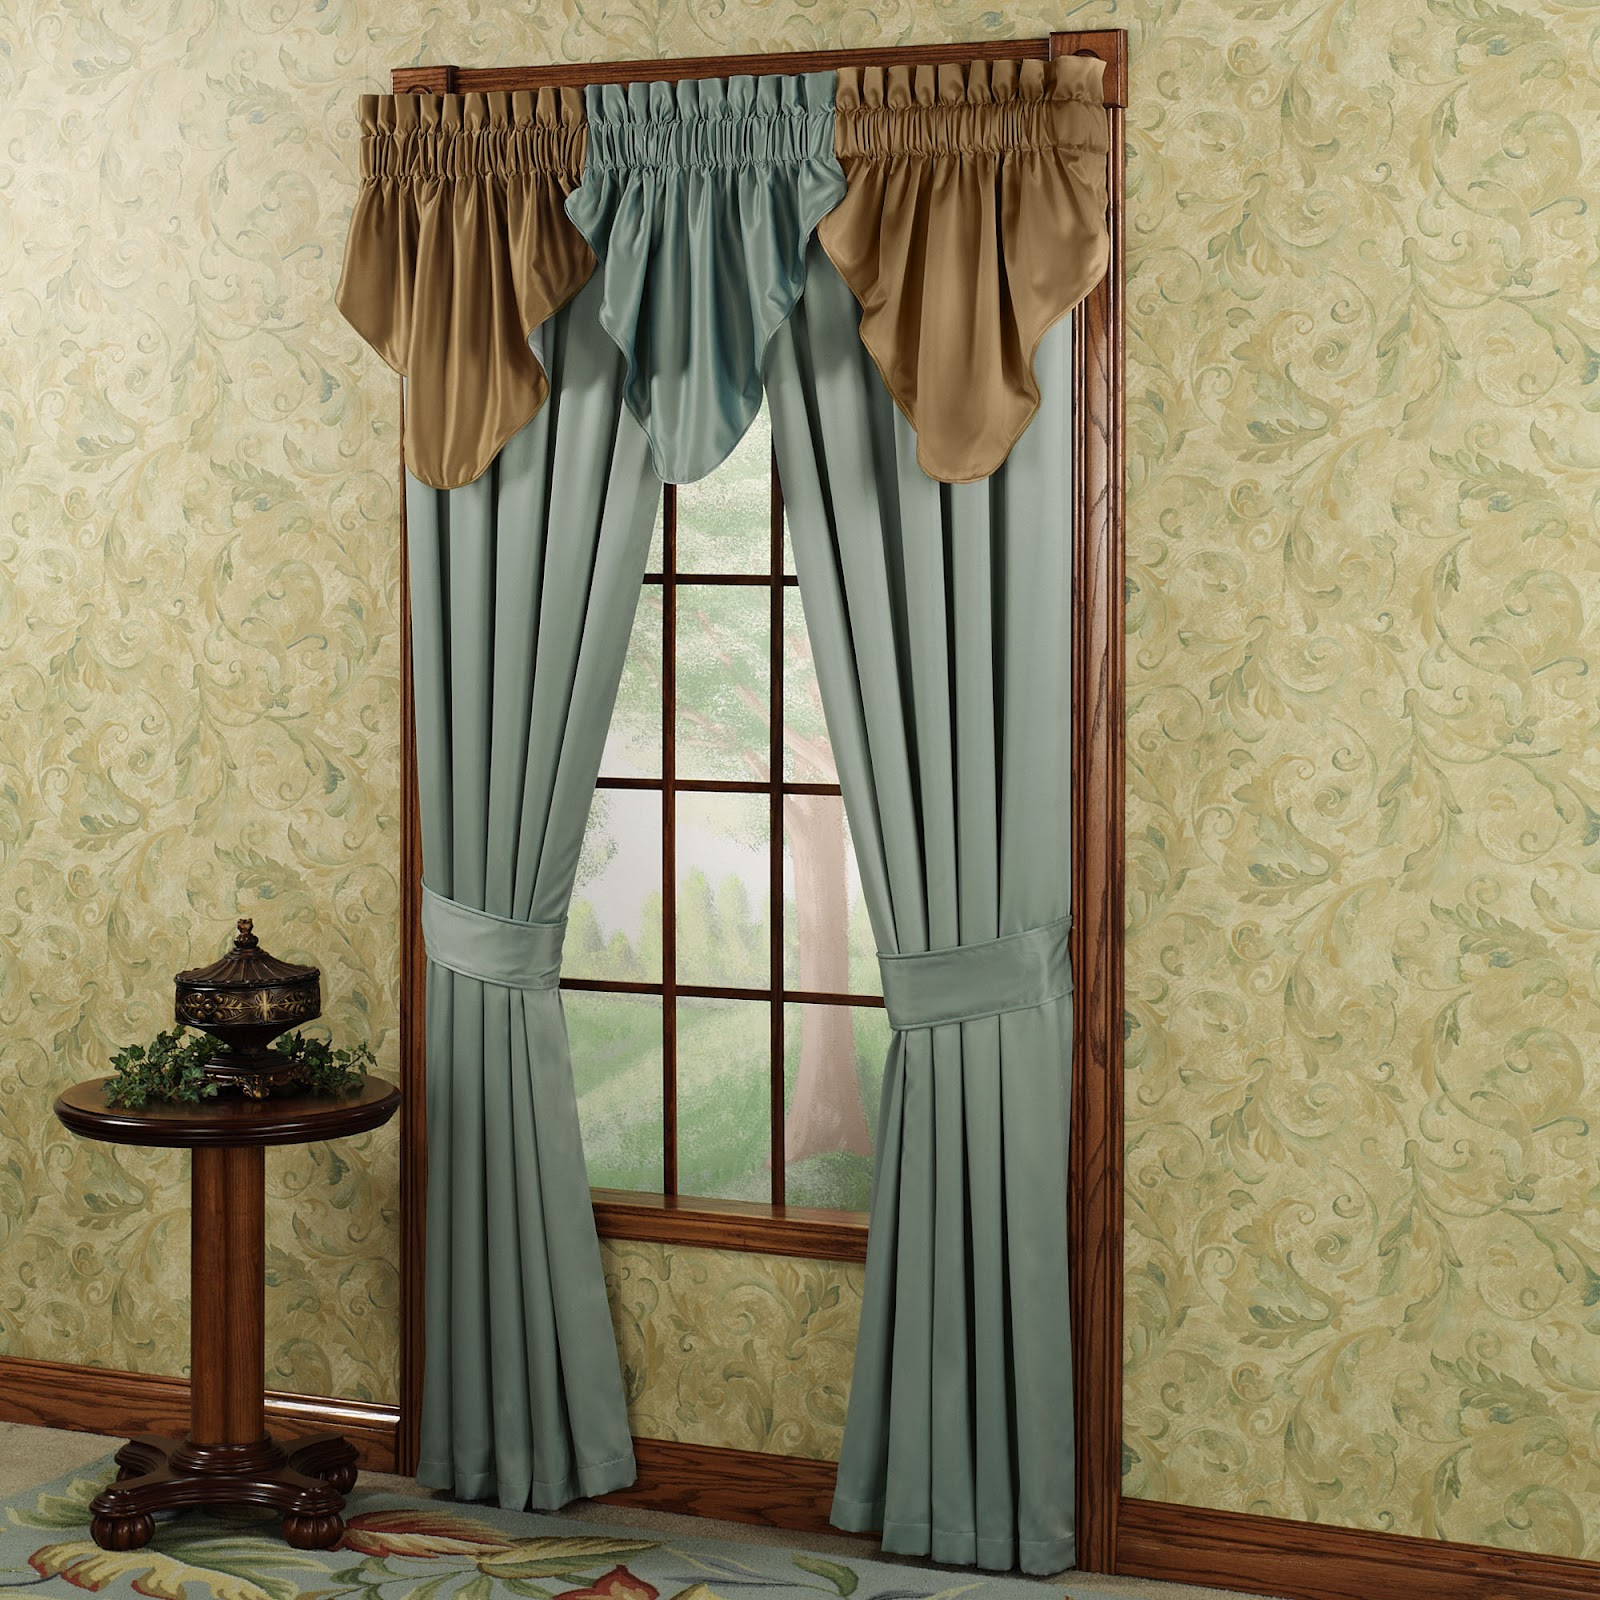 Http Shoaibnzm Home Design Blogspot Com 2012 05 Home Curtain Designs Ideas Html